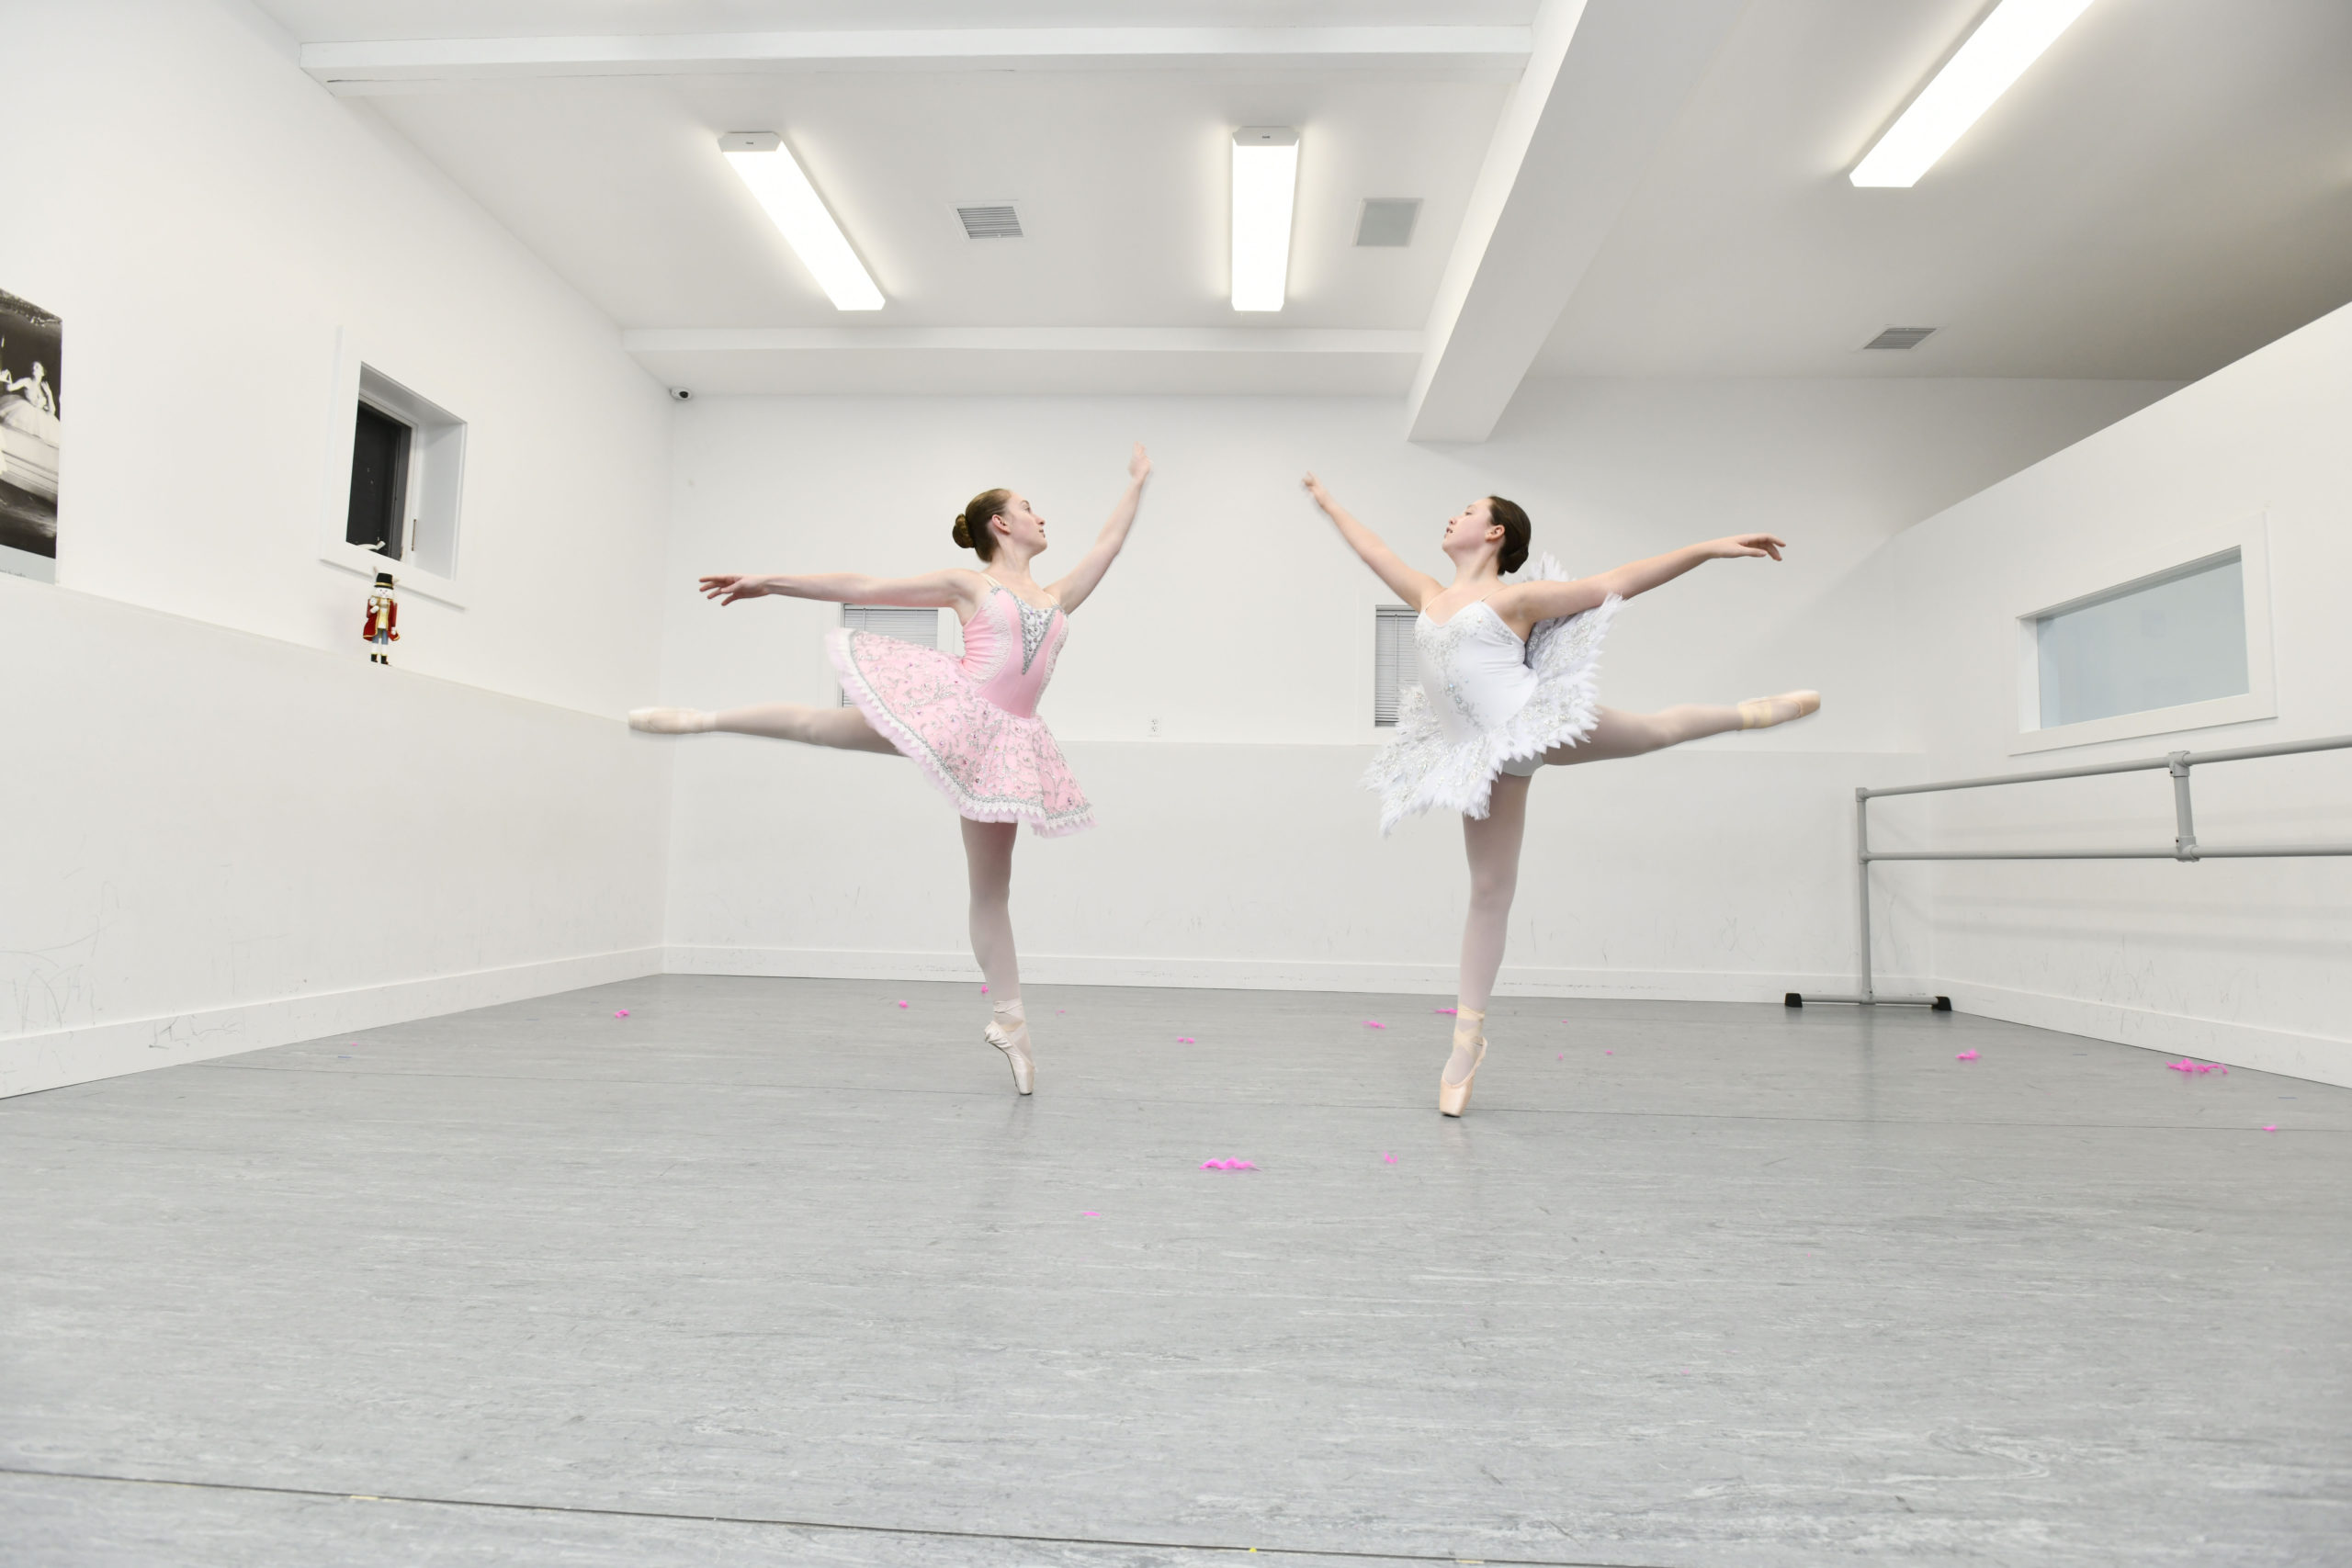 Elizabeth Gluck and Avery McClelland  uring rehearsals for the Studio 3 production,